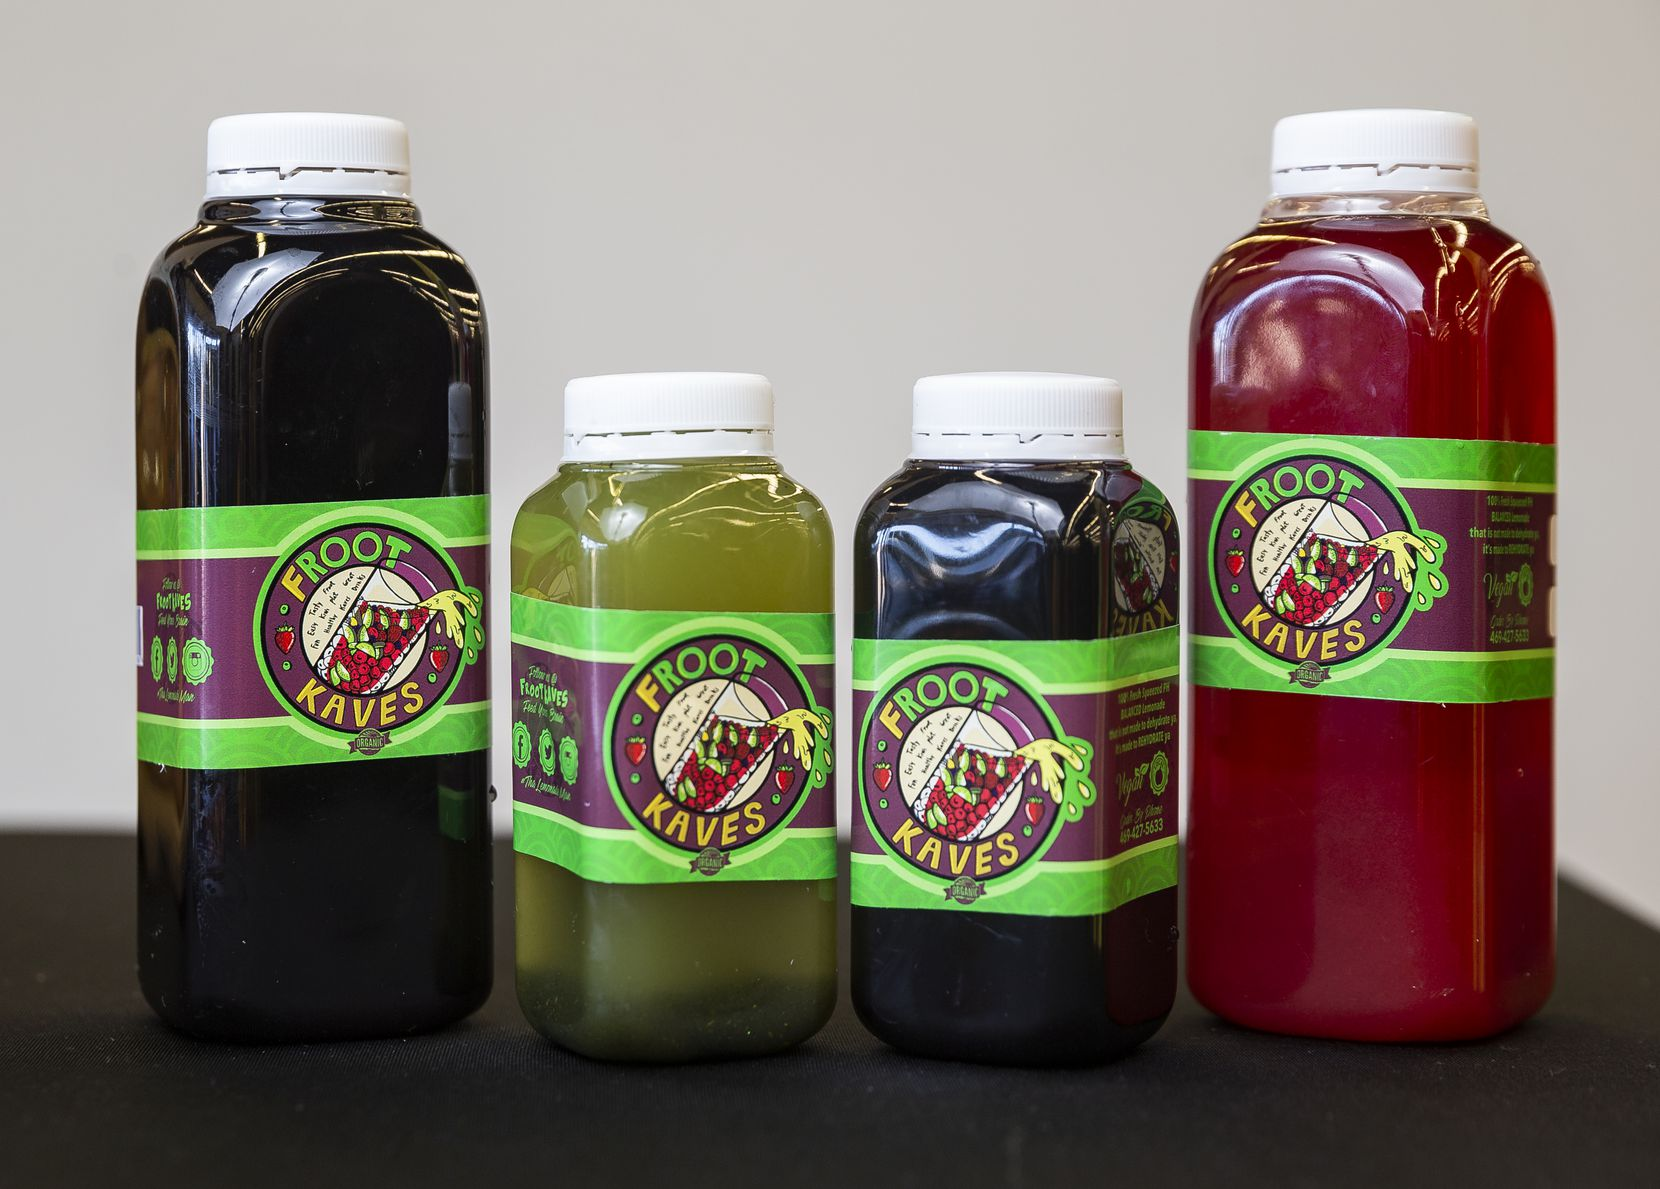 Bottles of the Froot Kaves powerberry syrup, Black lemonade and cherry limeade at their stand in the Grow DeSoto Market Place